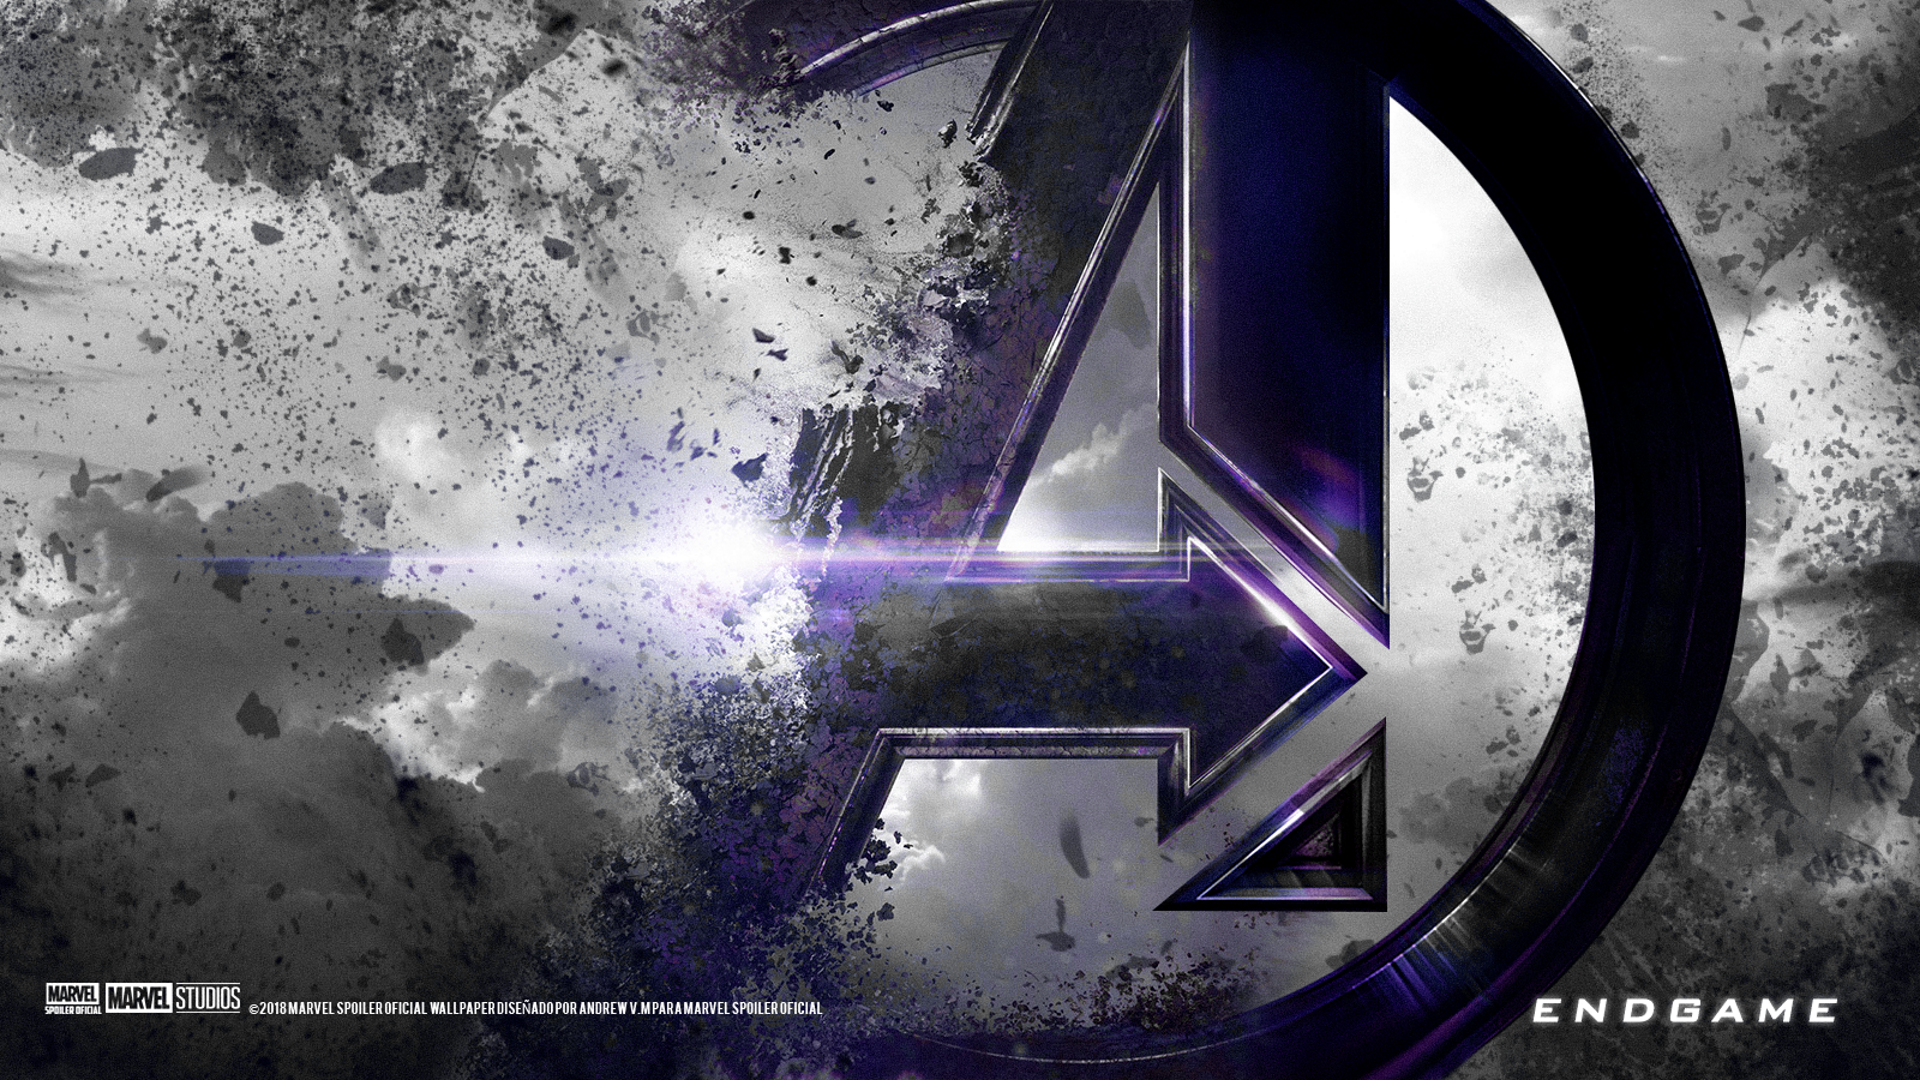 Avengers Endgame 1920x1080 Custom Colour Accent Black Purple Marvel Wallpaper Avengers Wallpaper Iron Man Hd Wallpaper